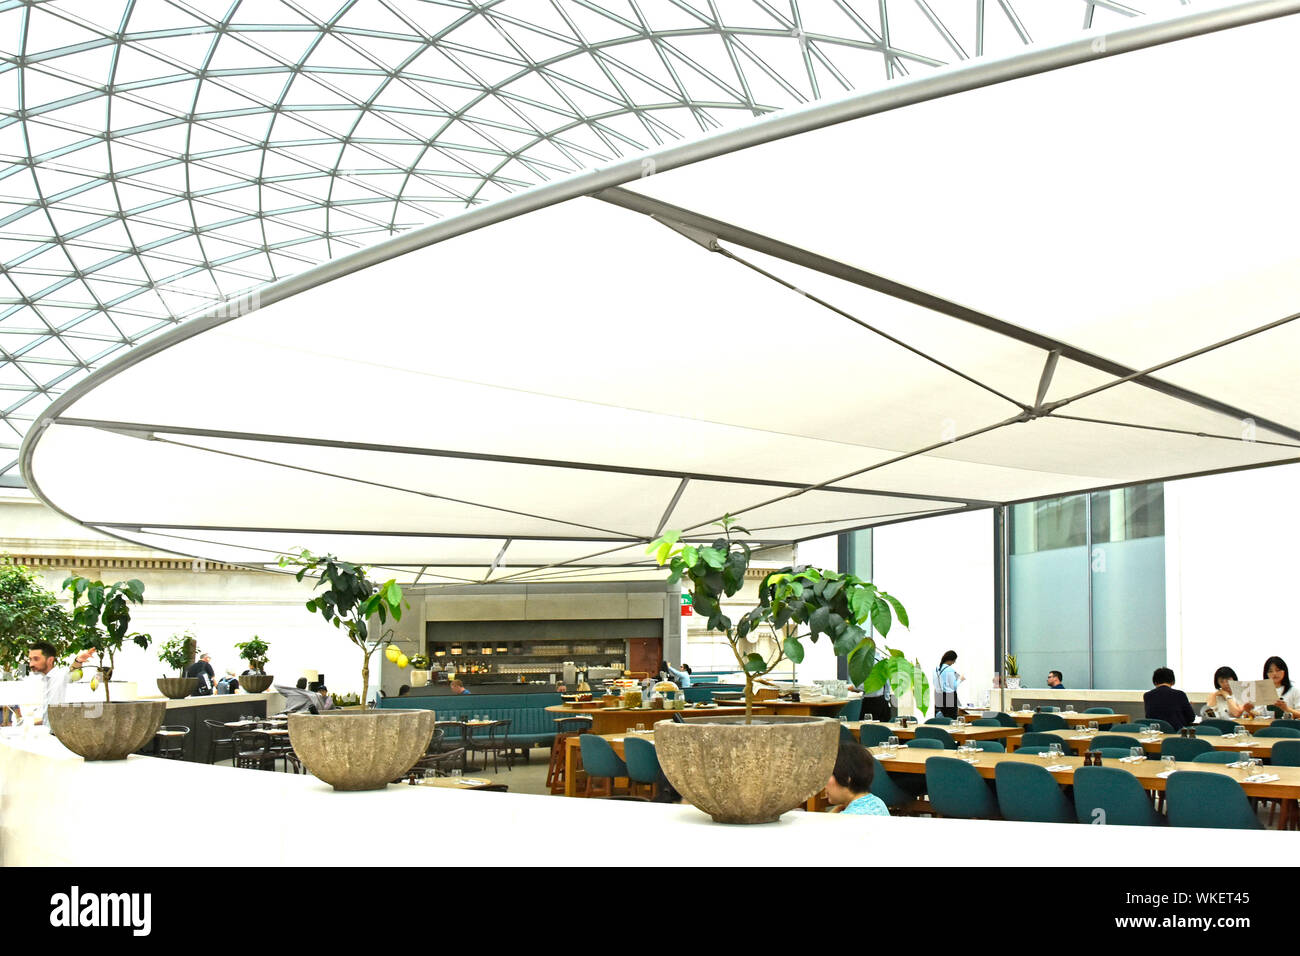 Curves Shapes Of Translucent Roof Canopy Design Modern British Museum Building Restaurant Interior Diners Seen Mid Day Holborn London England Uk Stock Photo Alamy